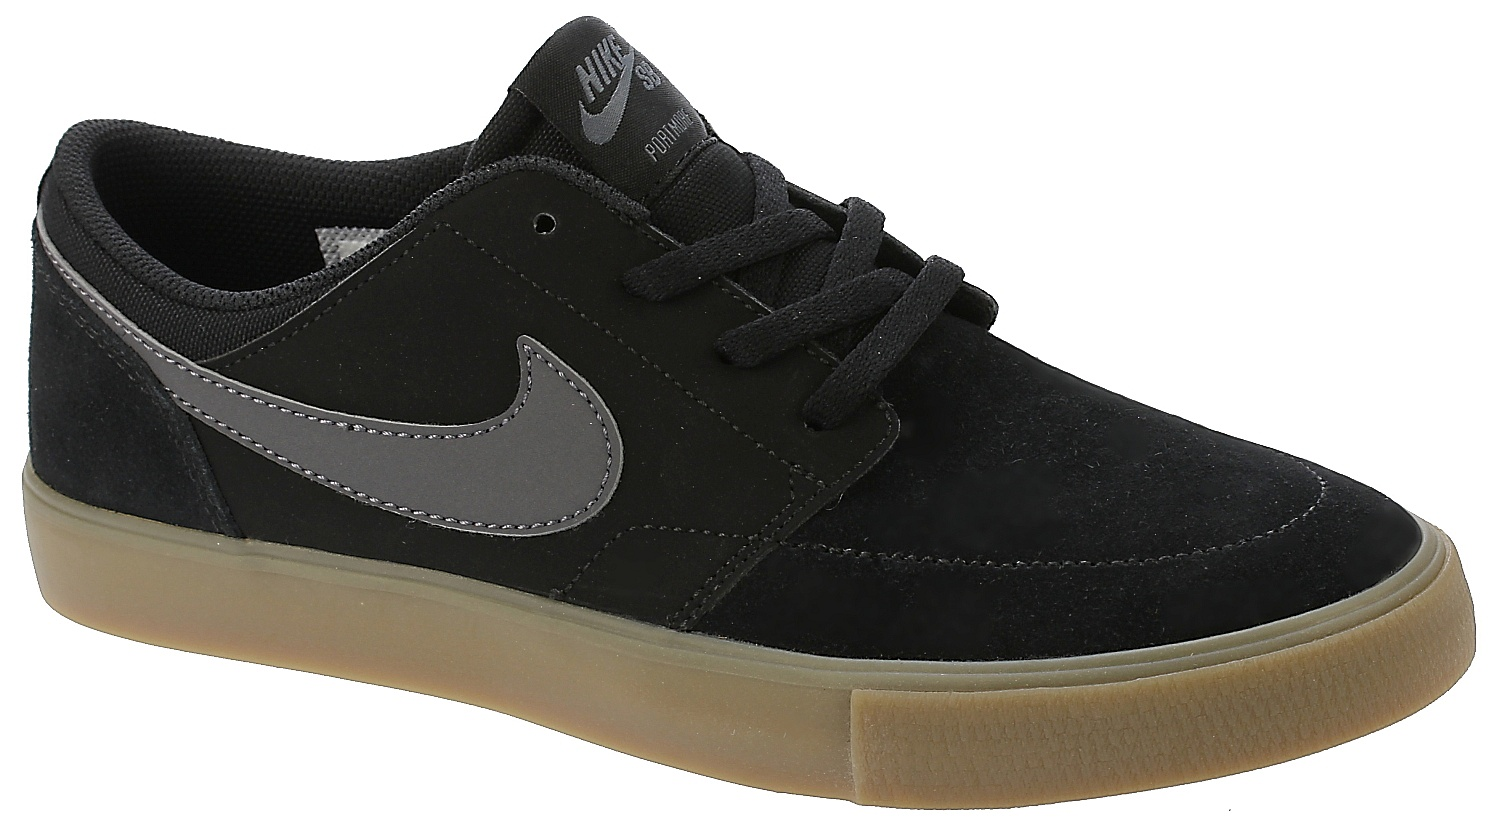 dziecięce buty Nike SB Portmore II GS - Black Dark Gray Gum Light Brown ... 9134caccbf4fc